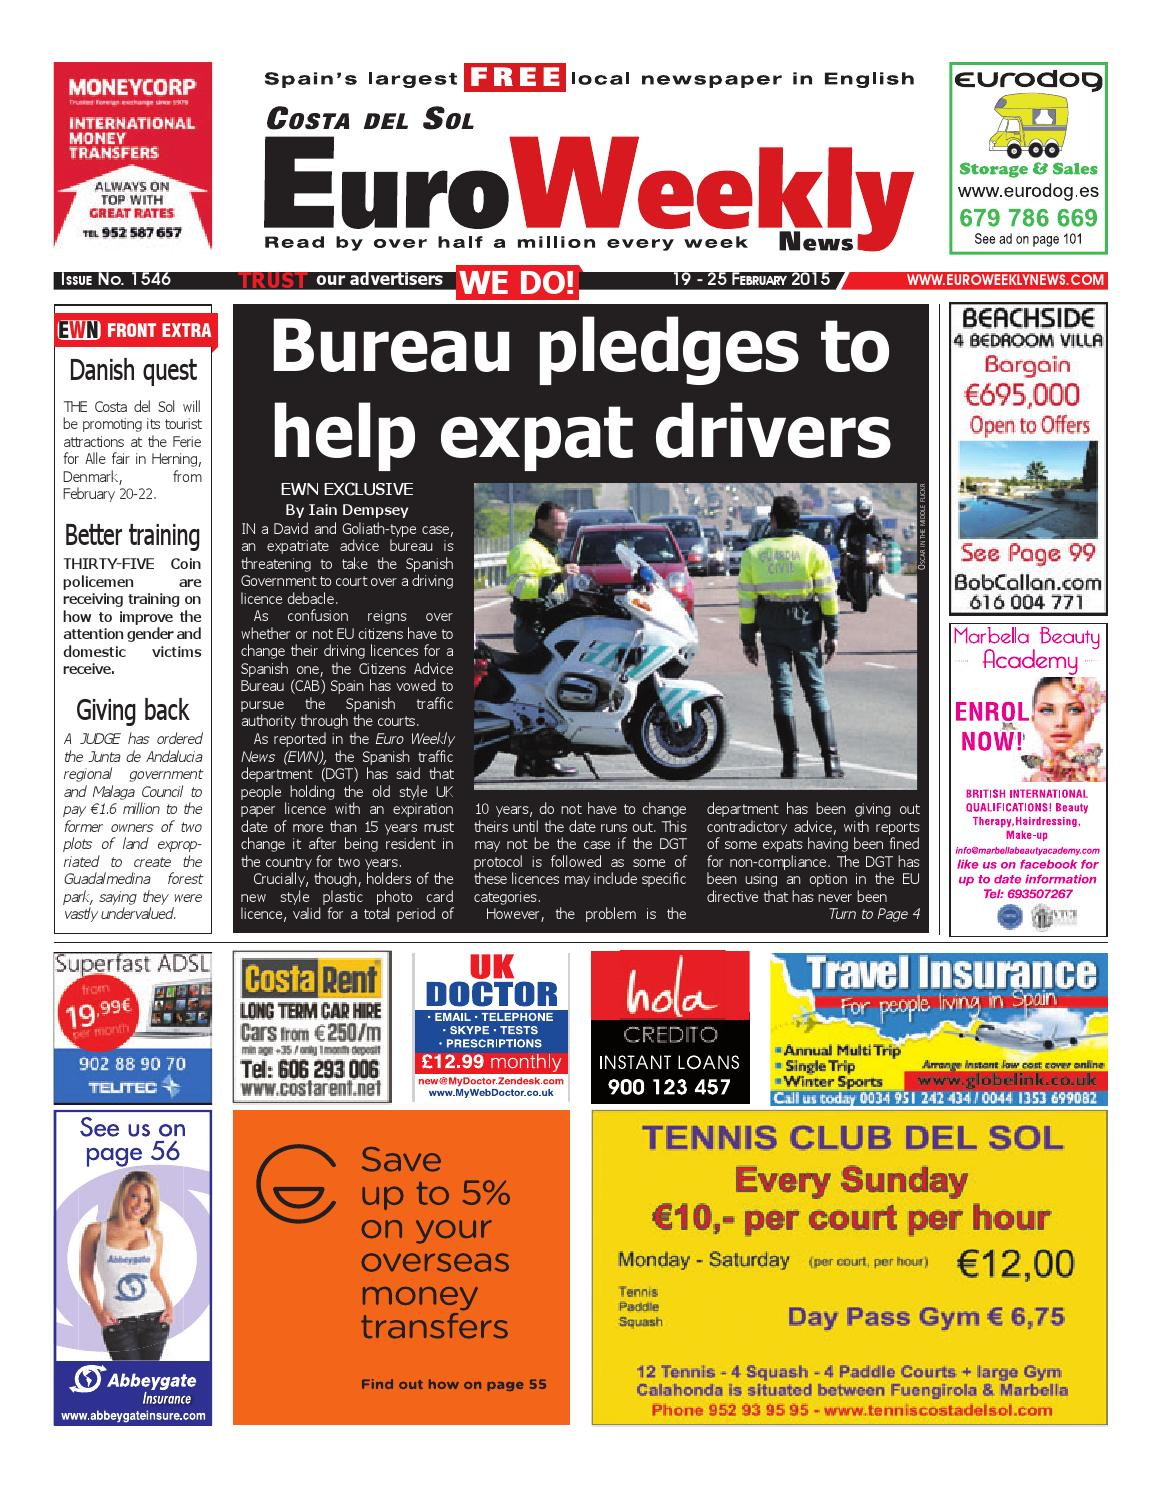 Euro Weekly News - Costa del Sol 19 - 25 February 2015 Issue 1546 by Euro  Weekly News Media S.A. - issuu